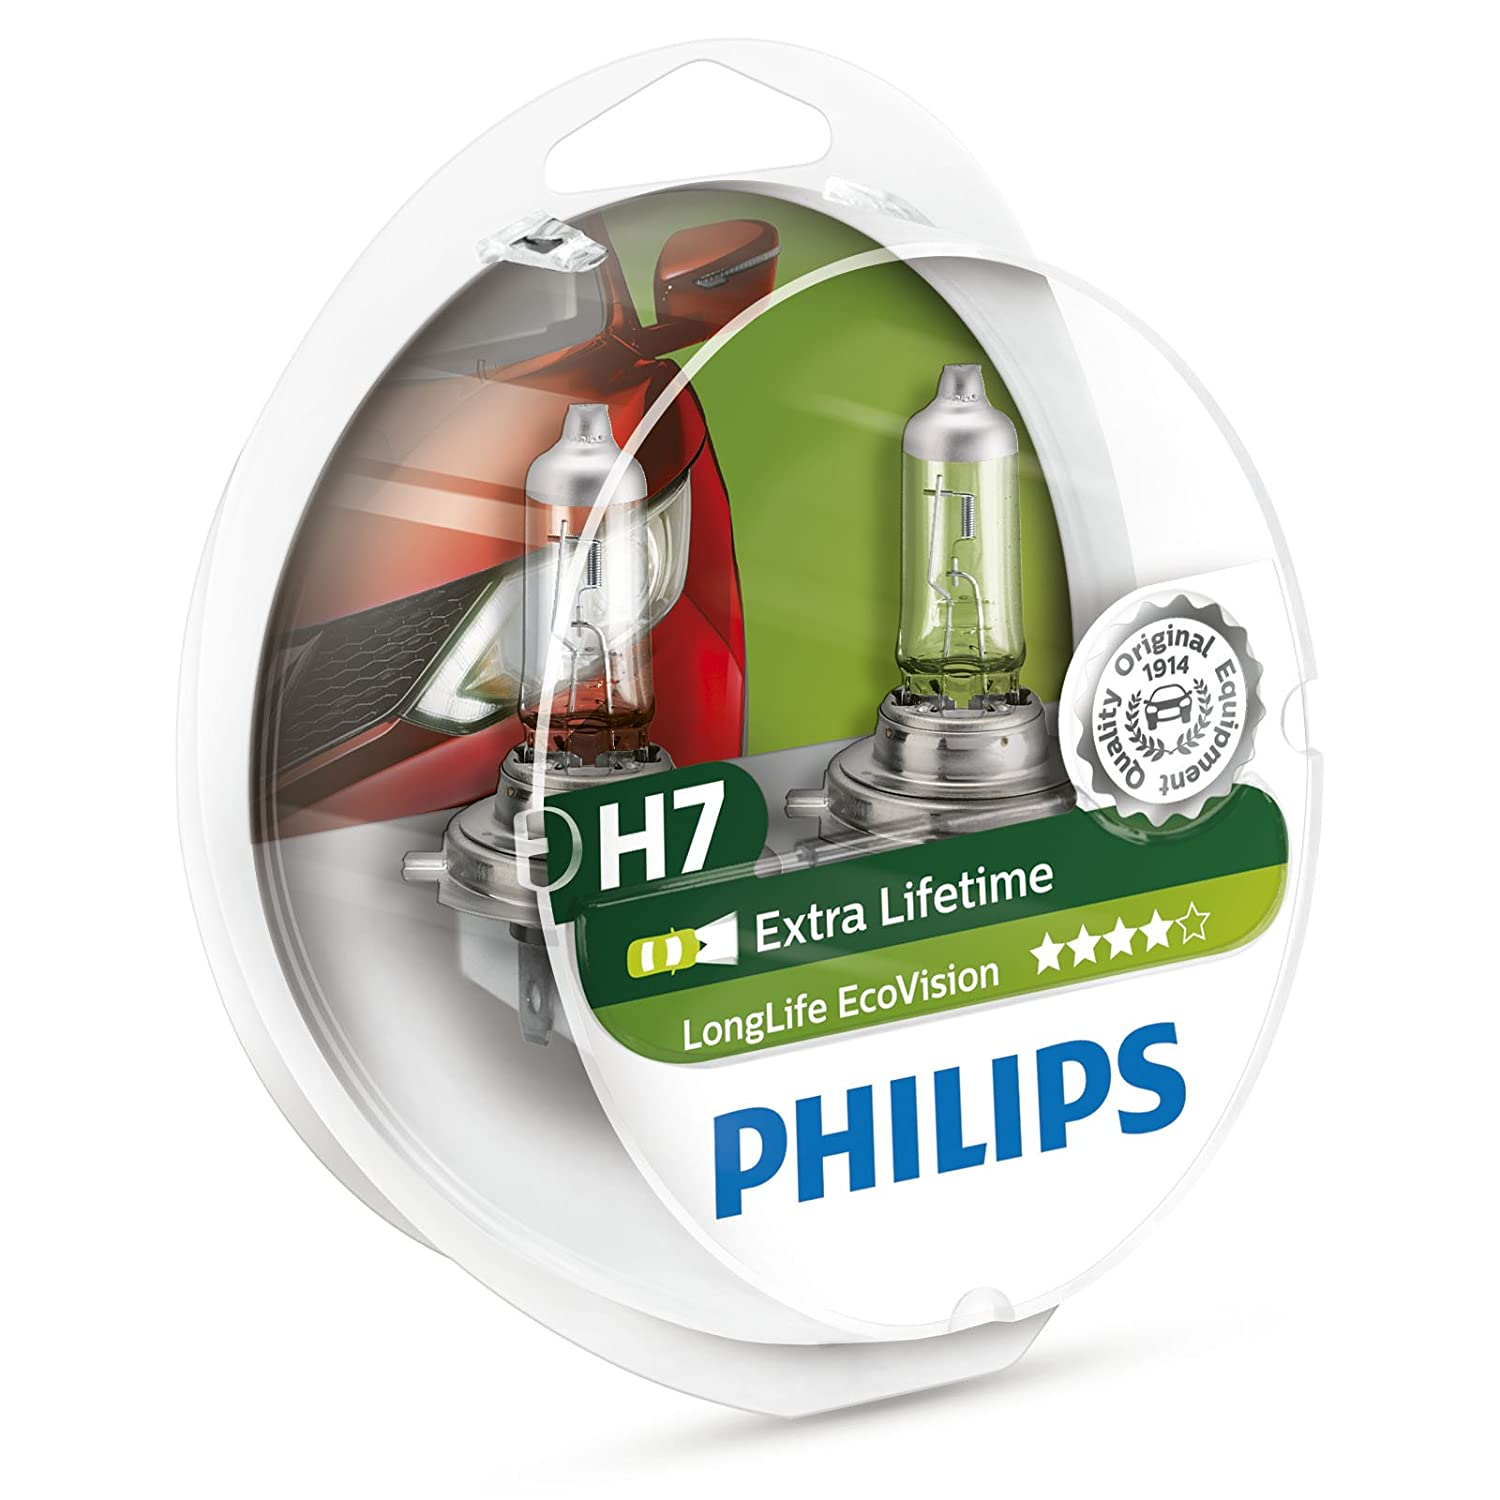 Philips 12972LLECOS2 - Fanale LongLife EcoVision H7, 2 pezzi